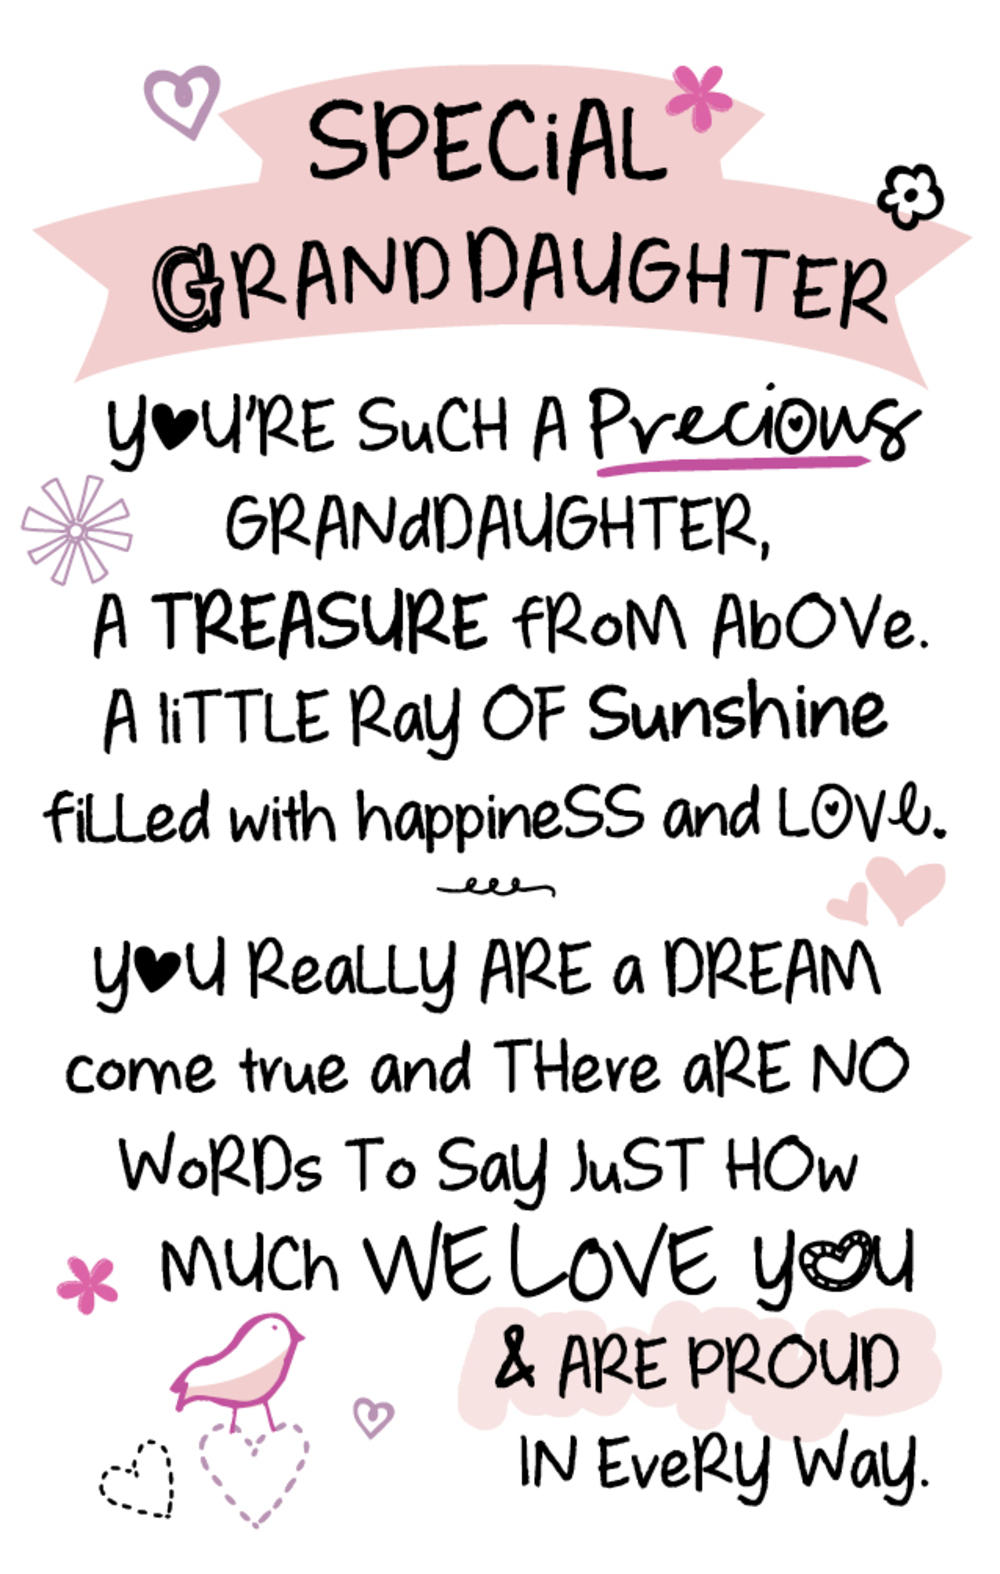 Special Granddaughter Inspired Words Keepsake Credit Card & Envelope